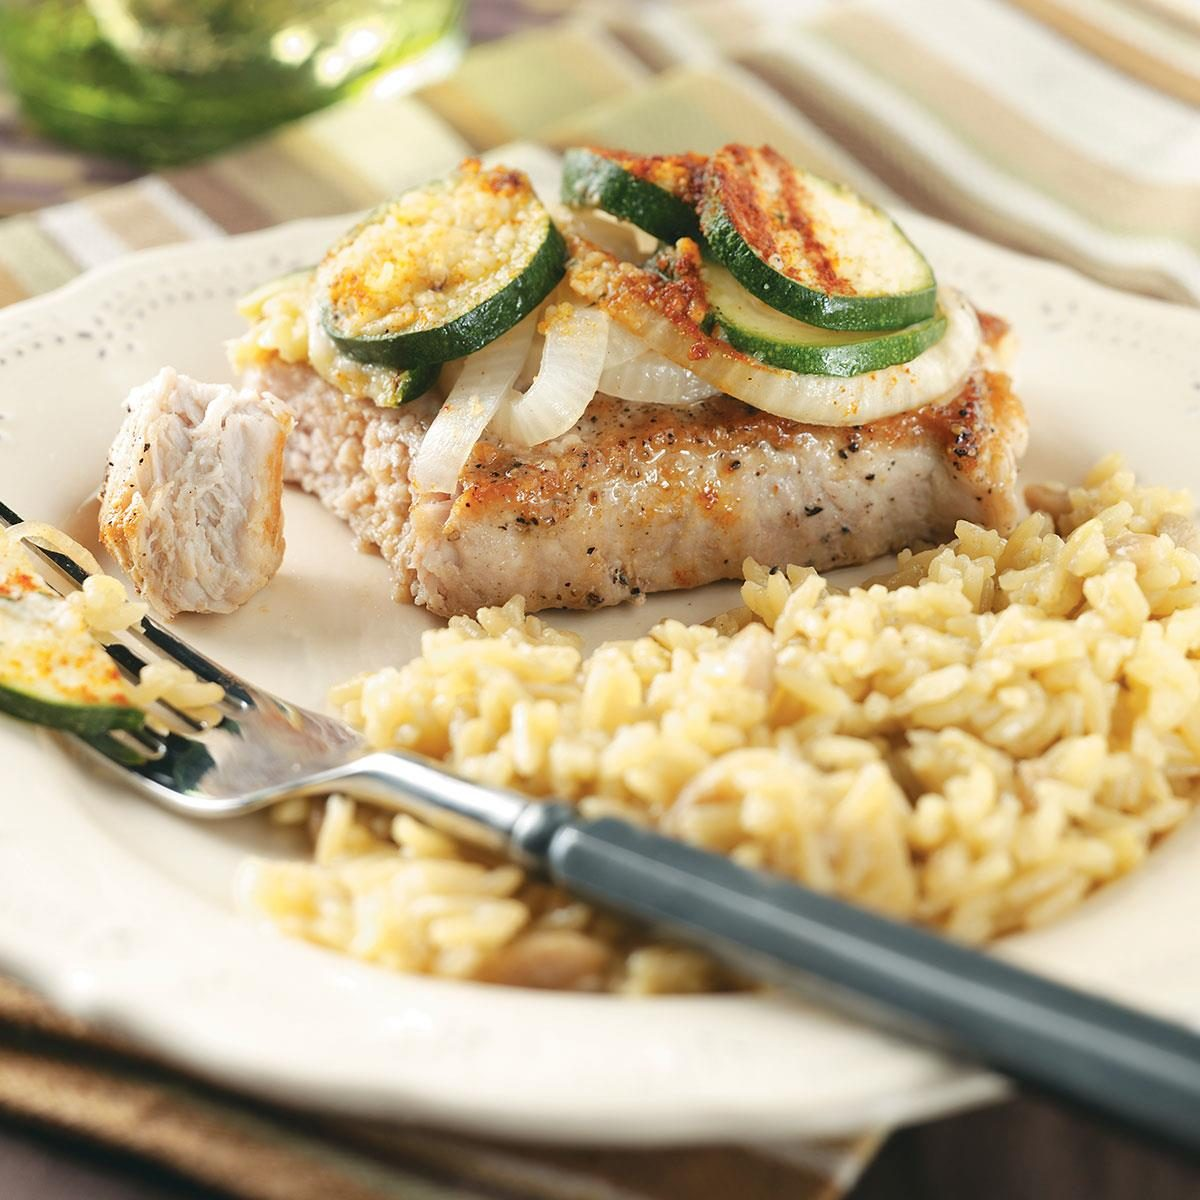 Skillet Pork Chops with Zucchini